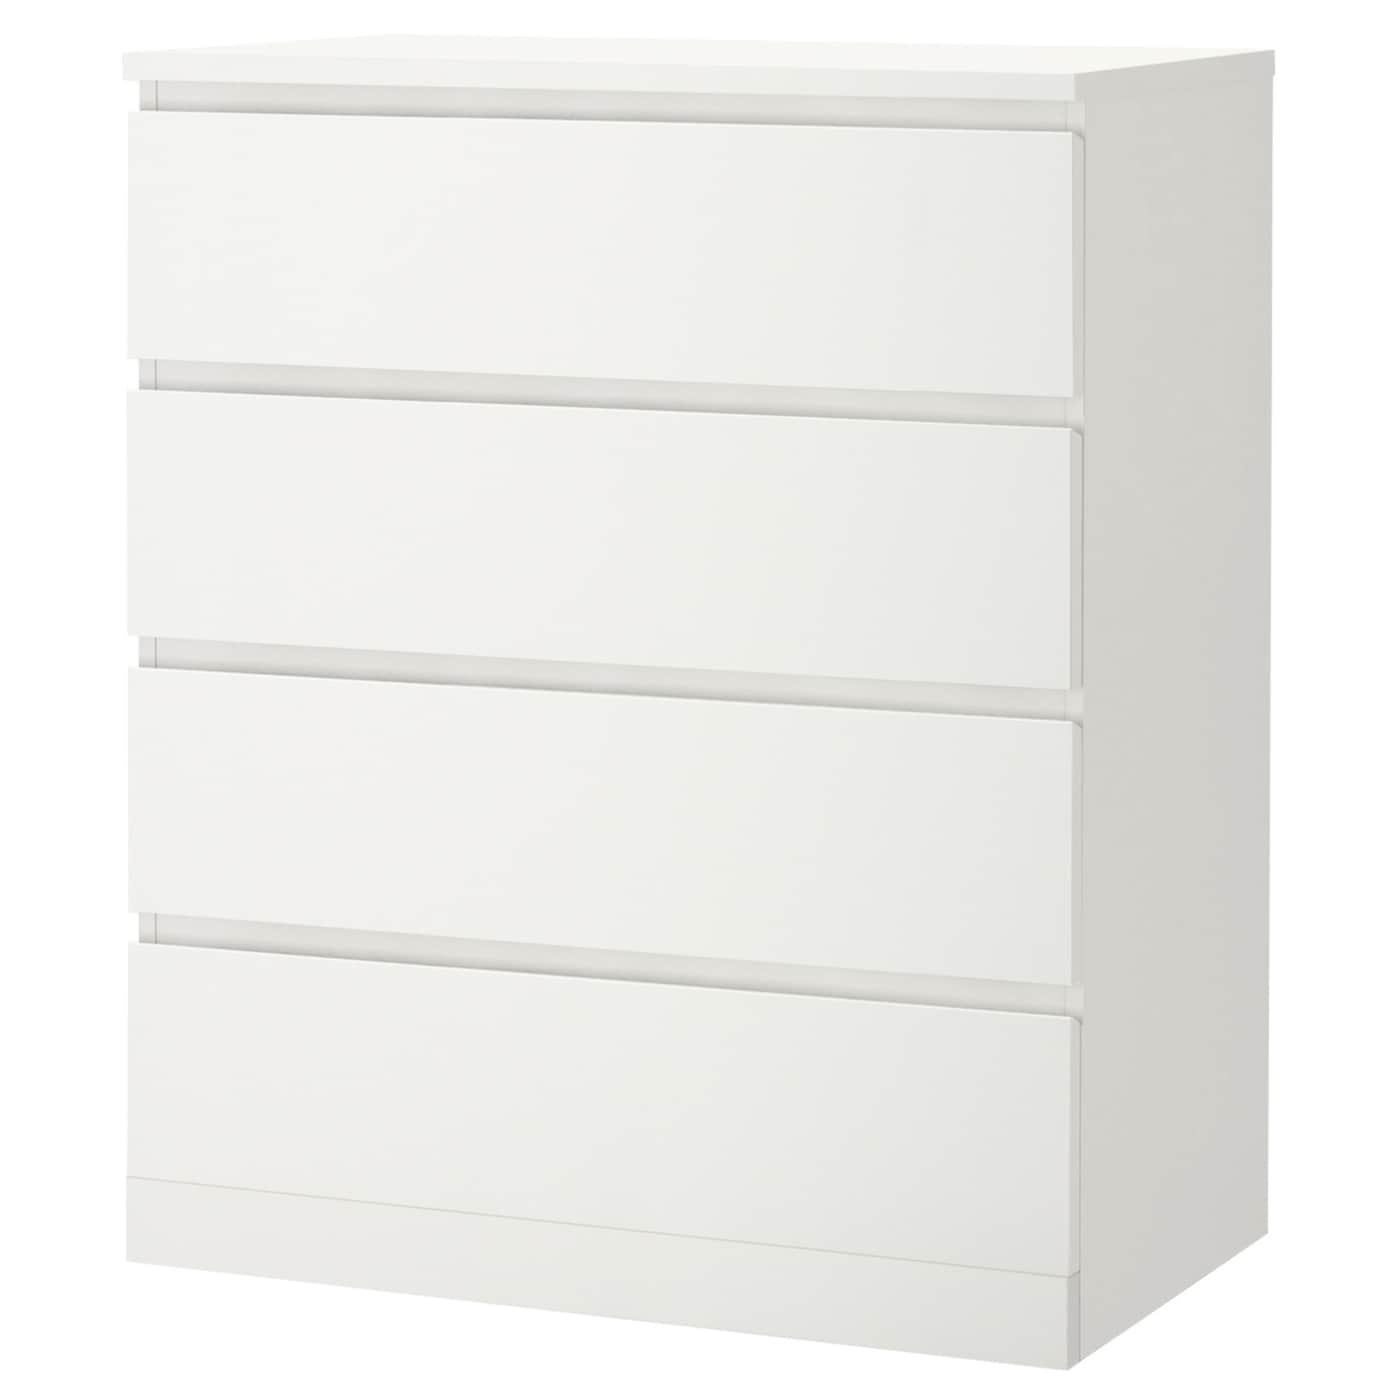 MALM Chest of 4 drawers - white 4x4 cm